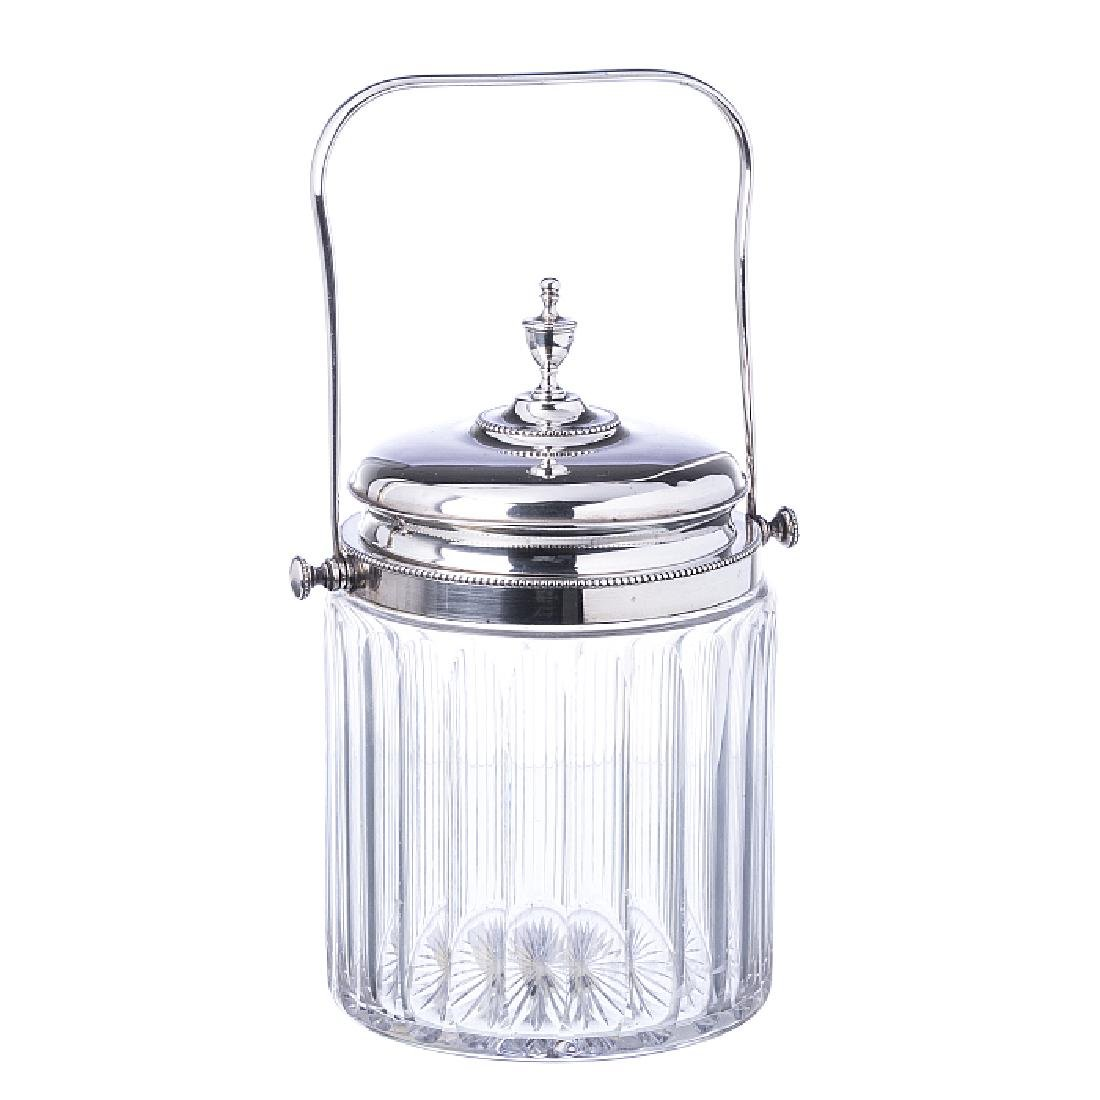 Cake stand in glass and silver